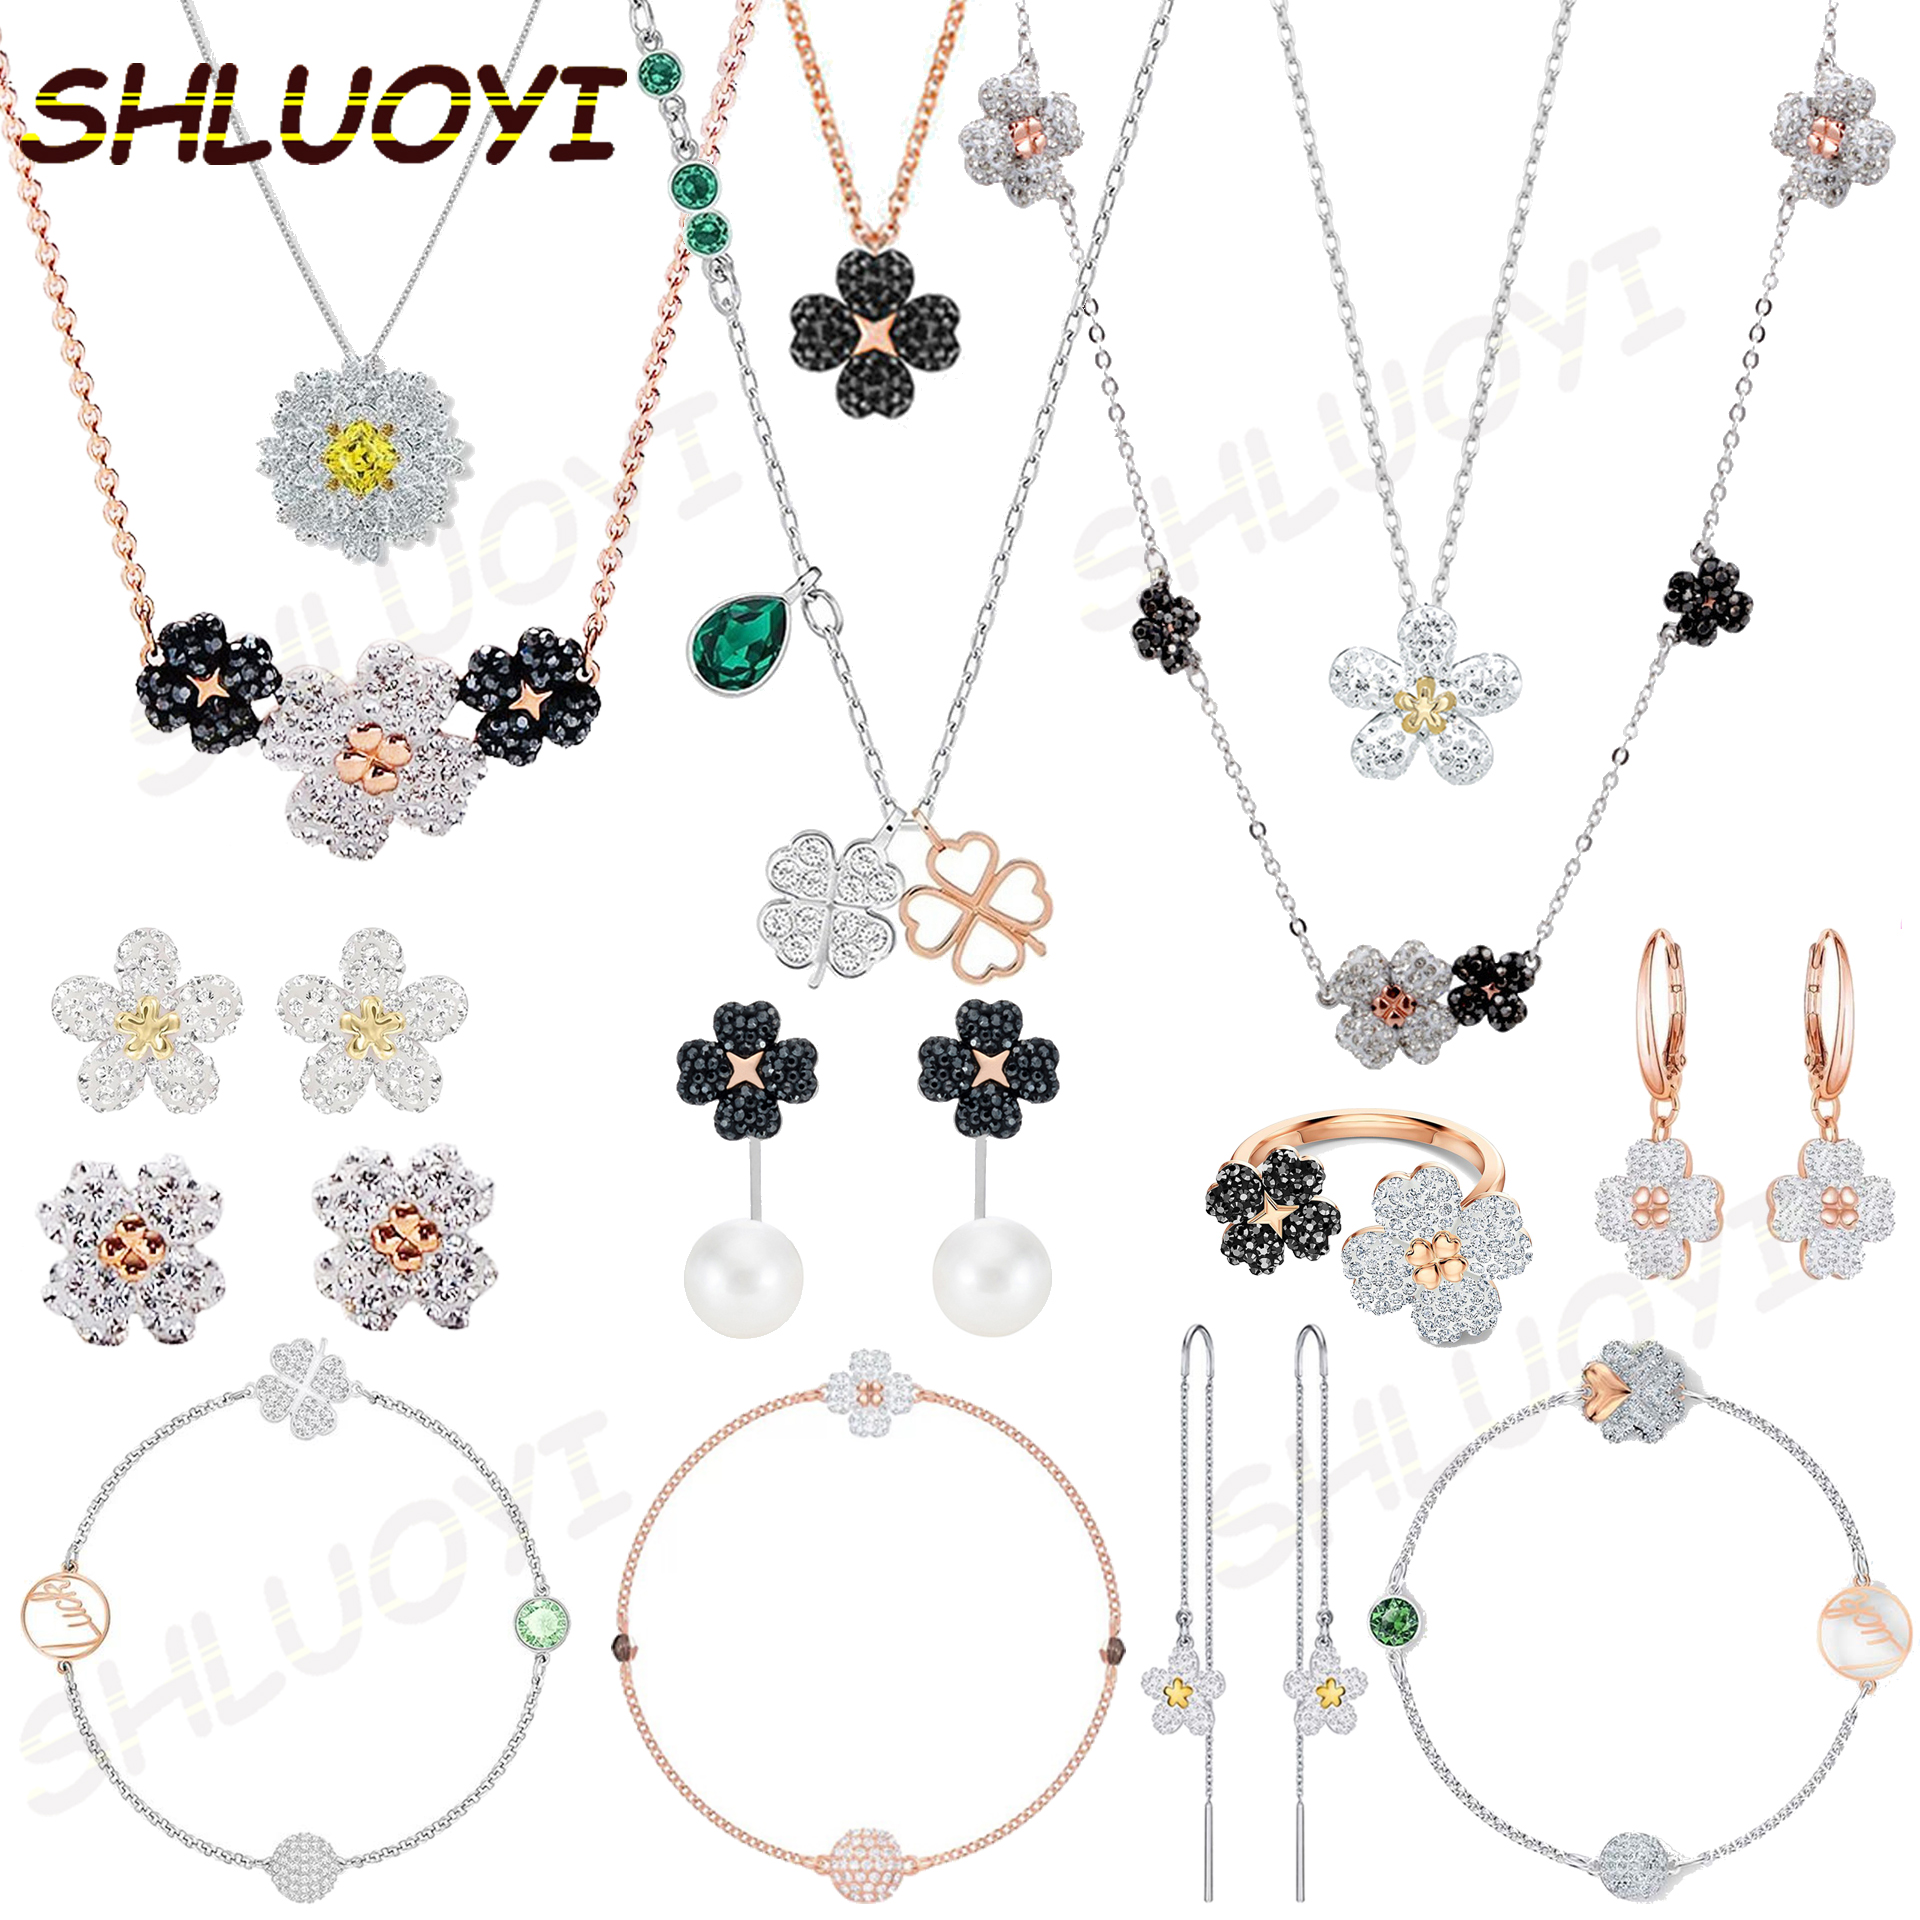 2020 fashion jewelry swa1:1 exquisite Austrian Crystal double-sided four leaf necklace is a charming gift for friends